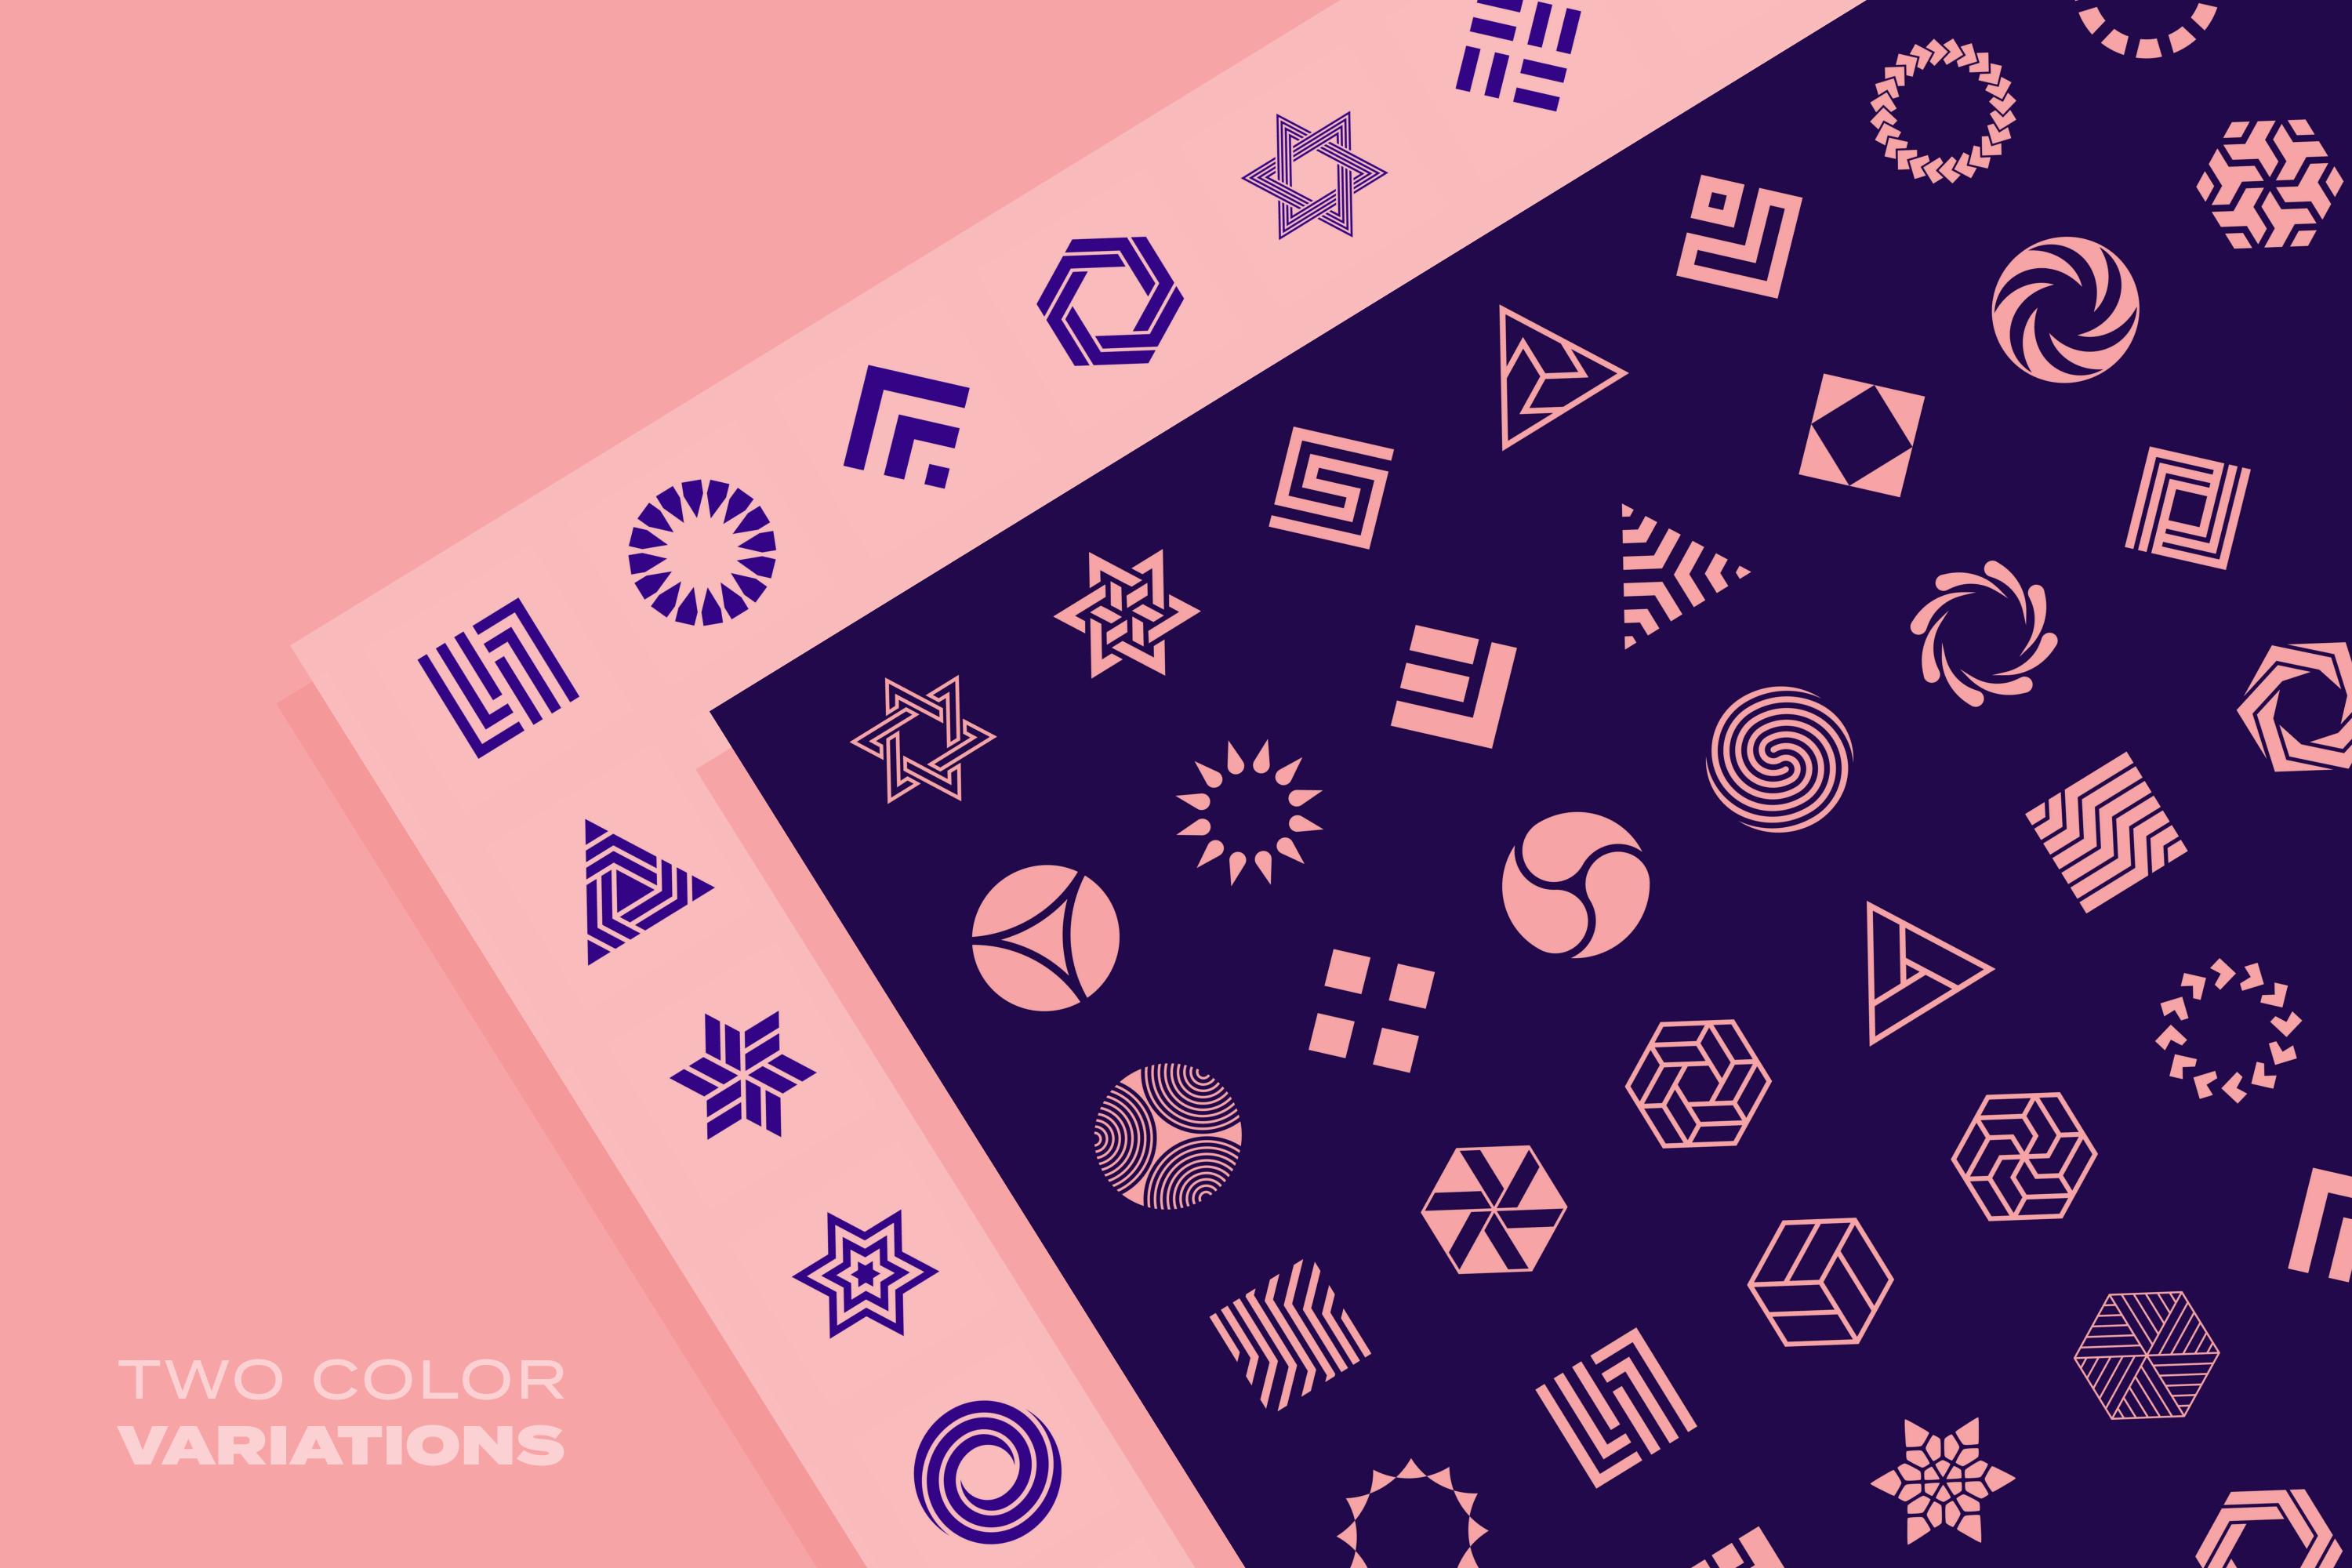 96 Geometric shapes & logo marks collection VOL.1 example image 20